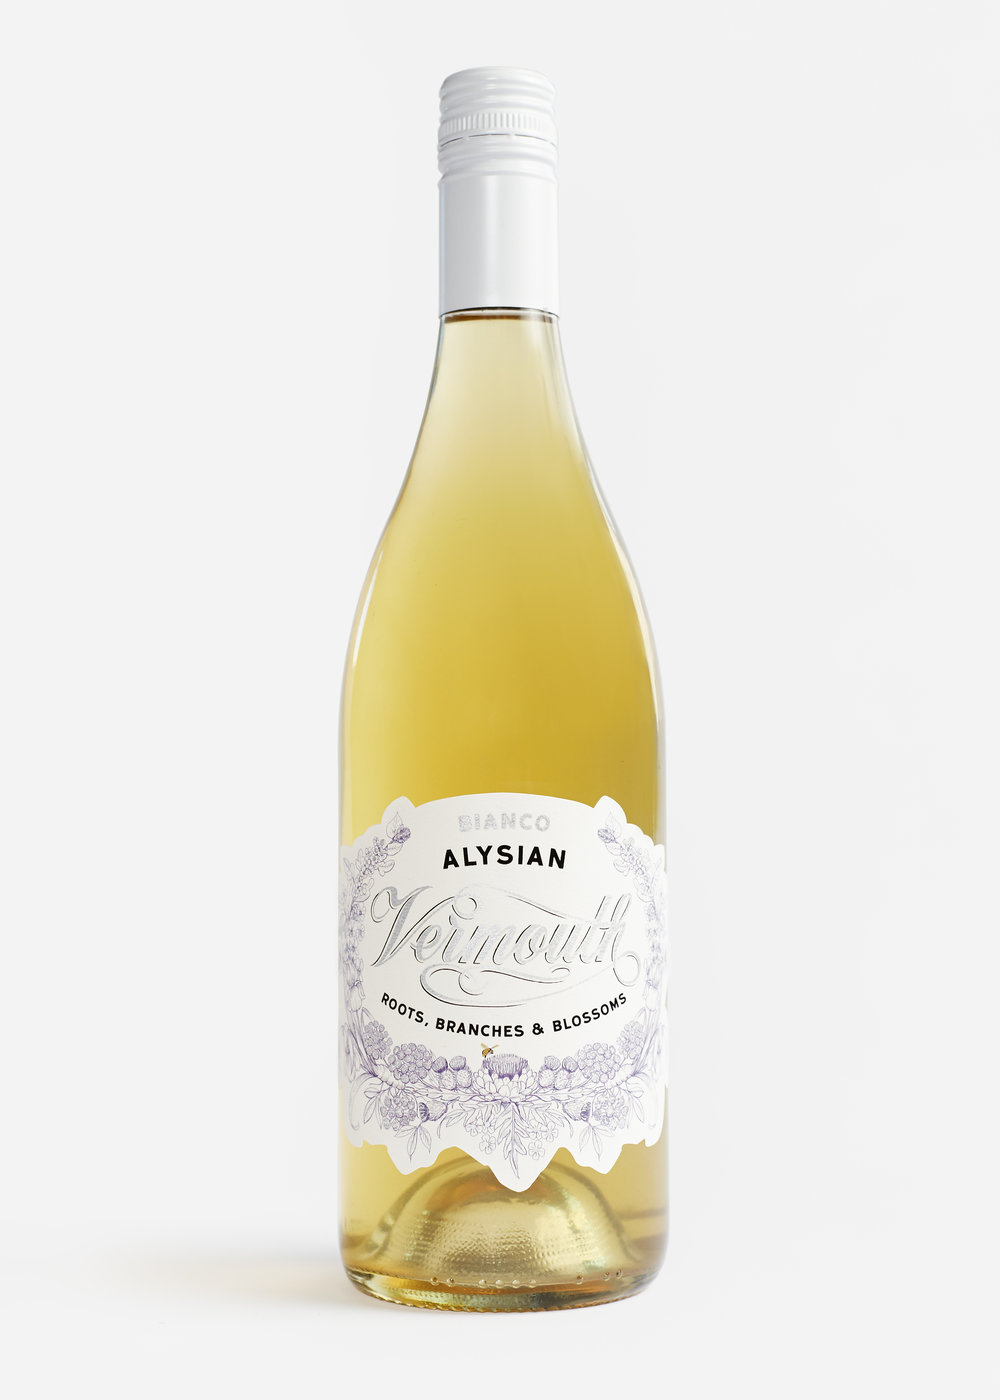 The Alysian Vermouth Bianco - True craft vermouth handmade in Sonoma County, California